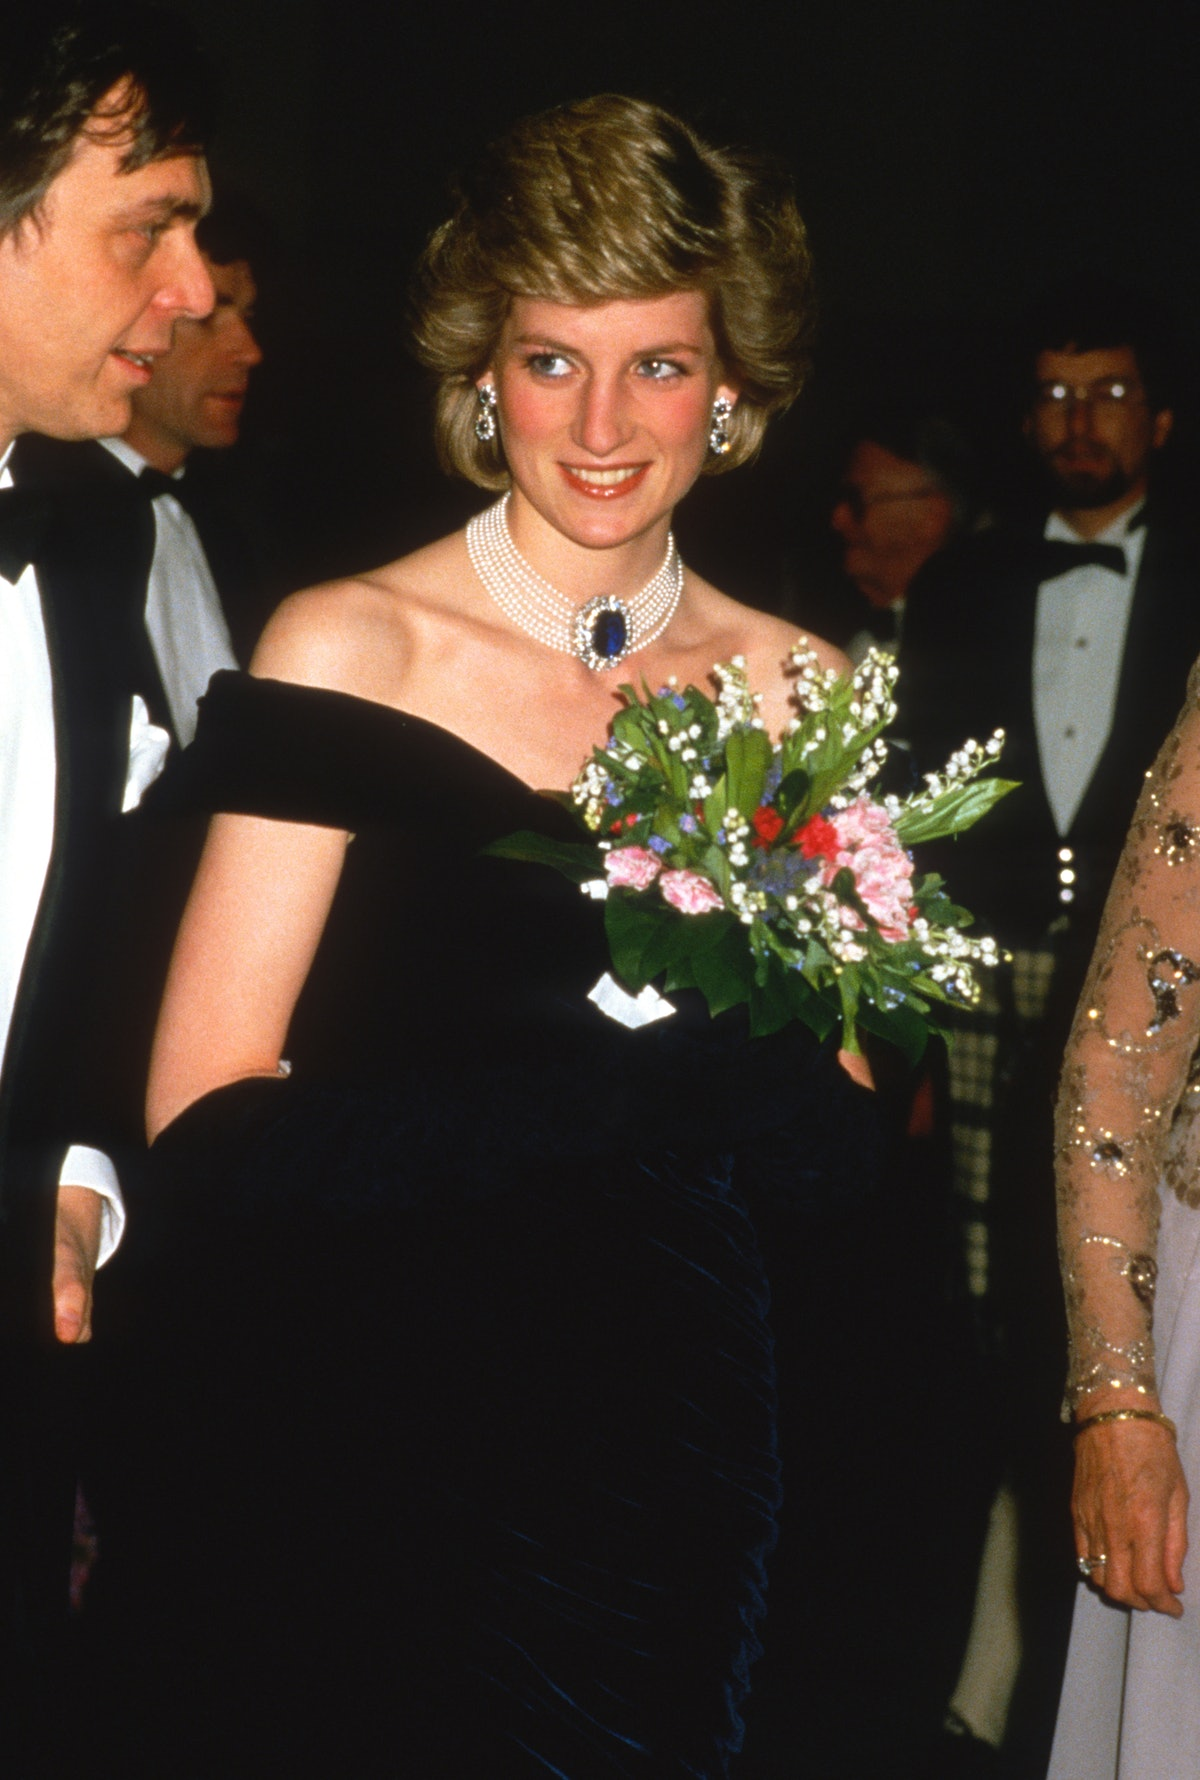 Princess Diana had a hand in editing her biography.